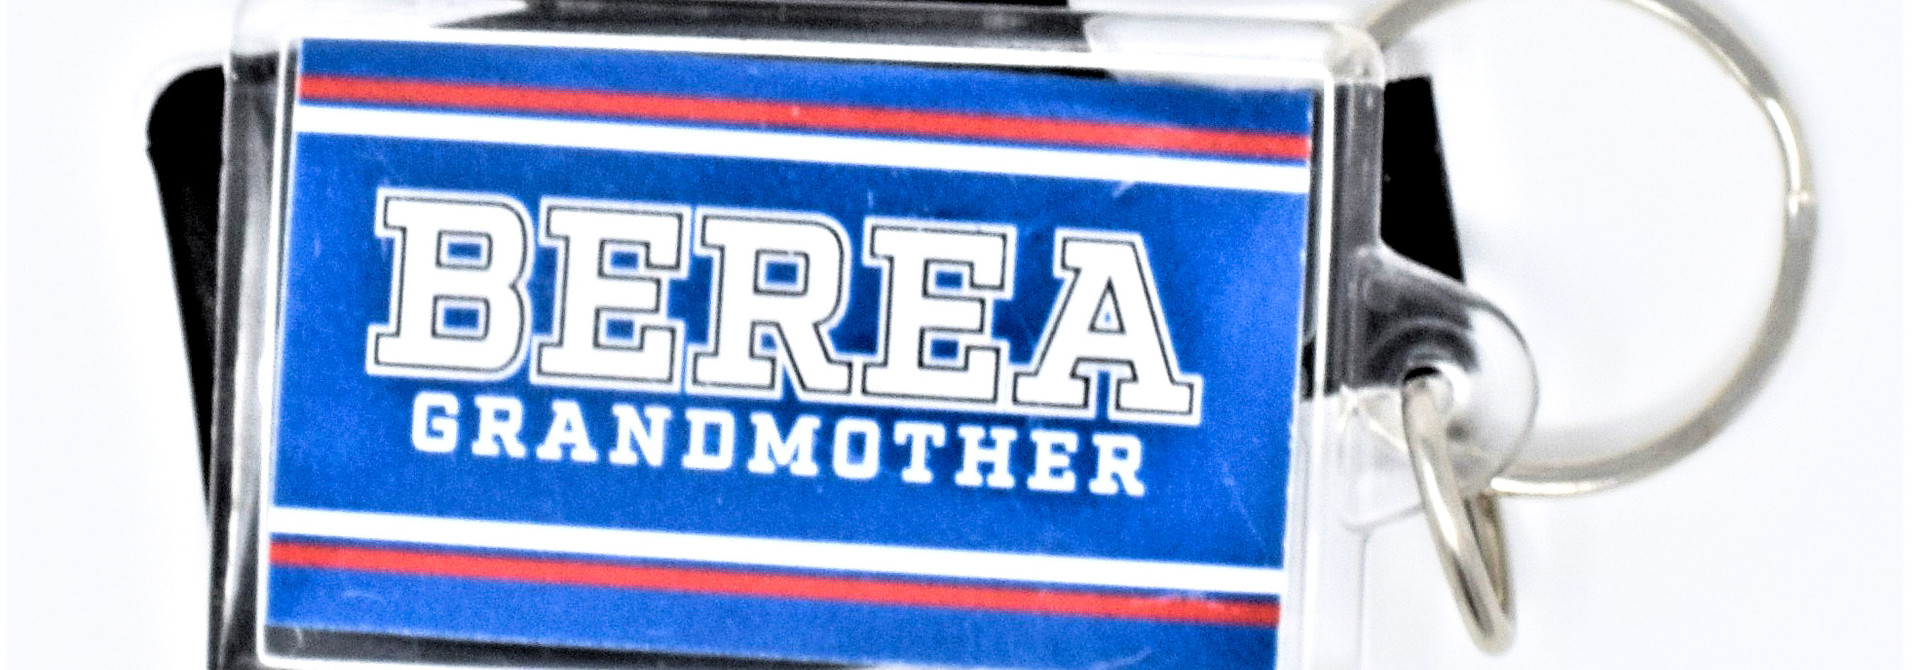 Berea Grandmother Key Ring